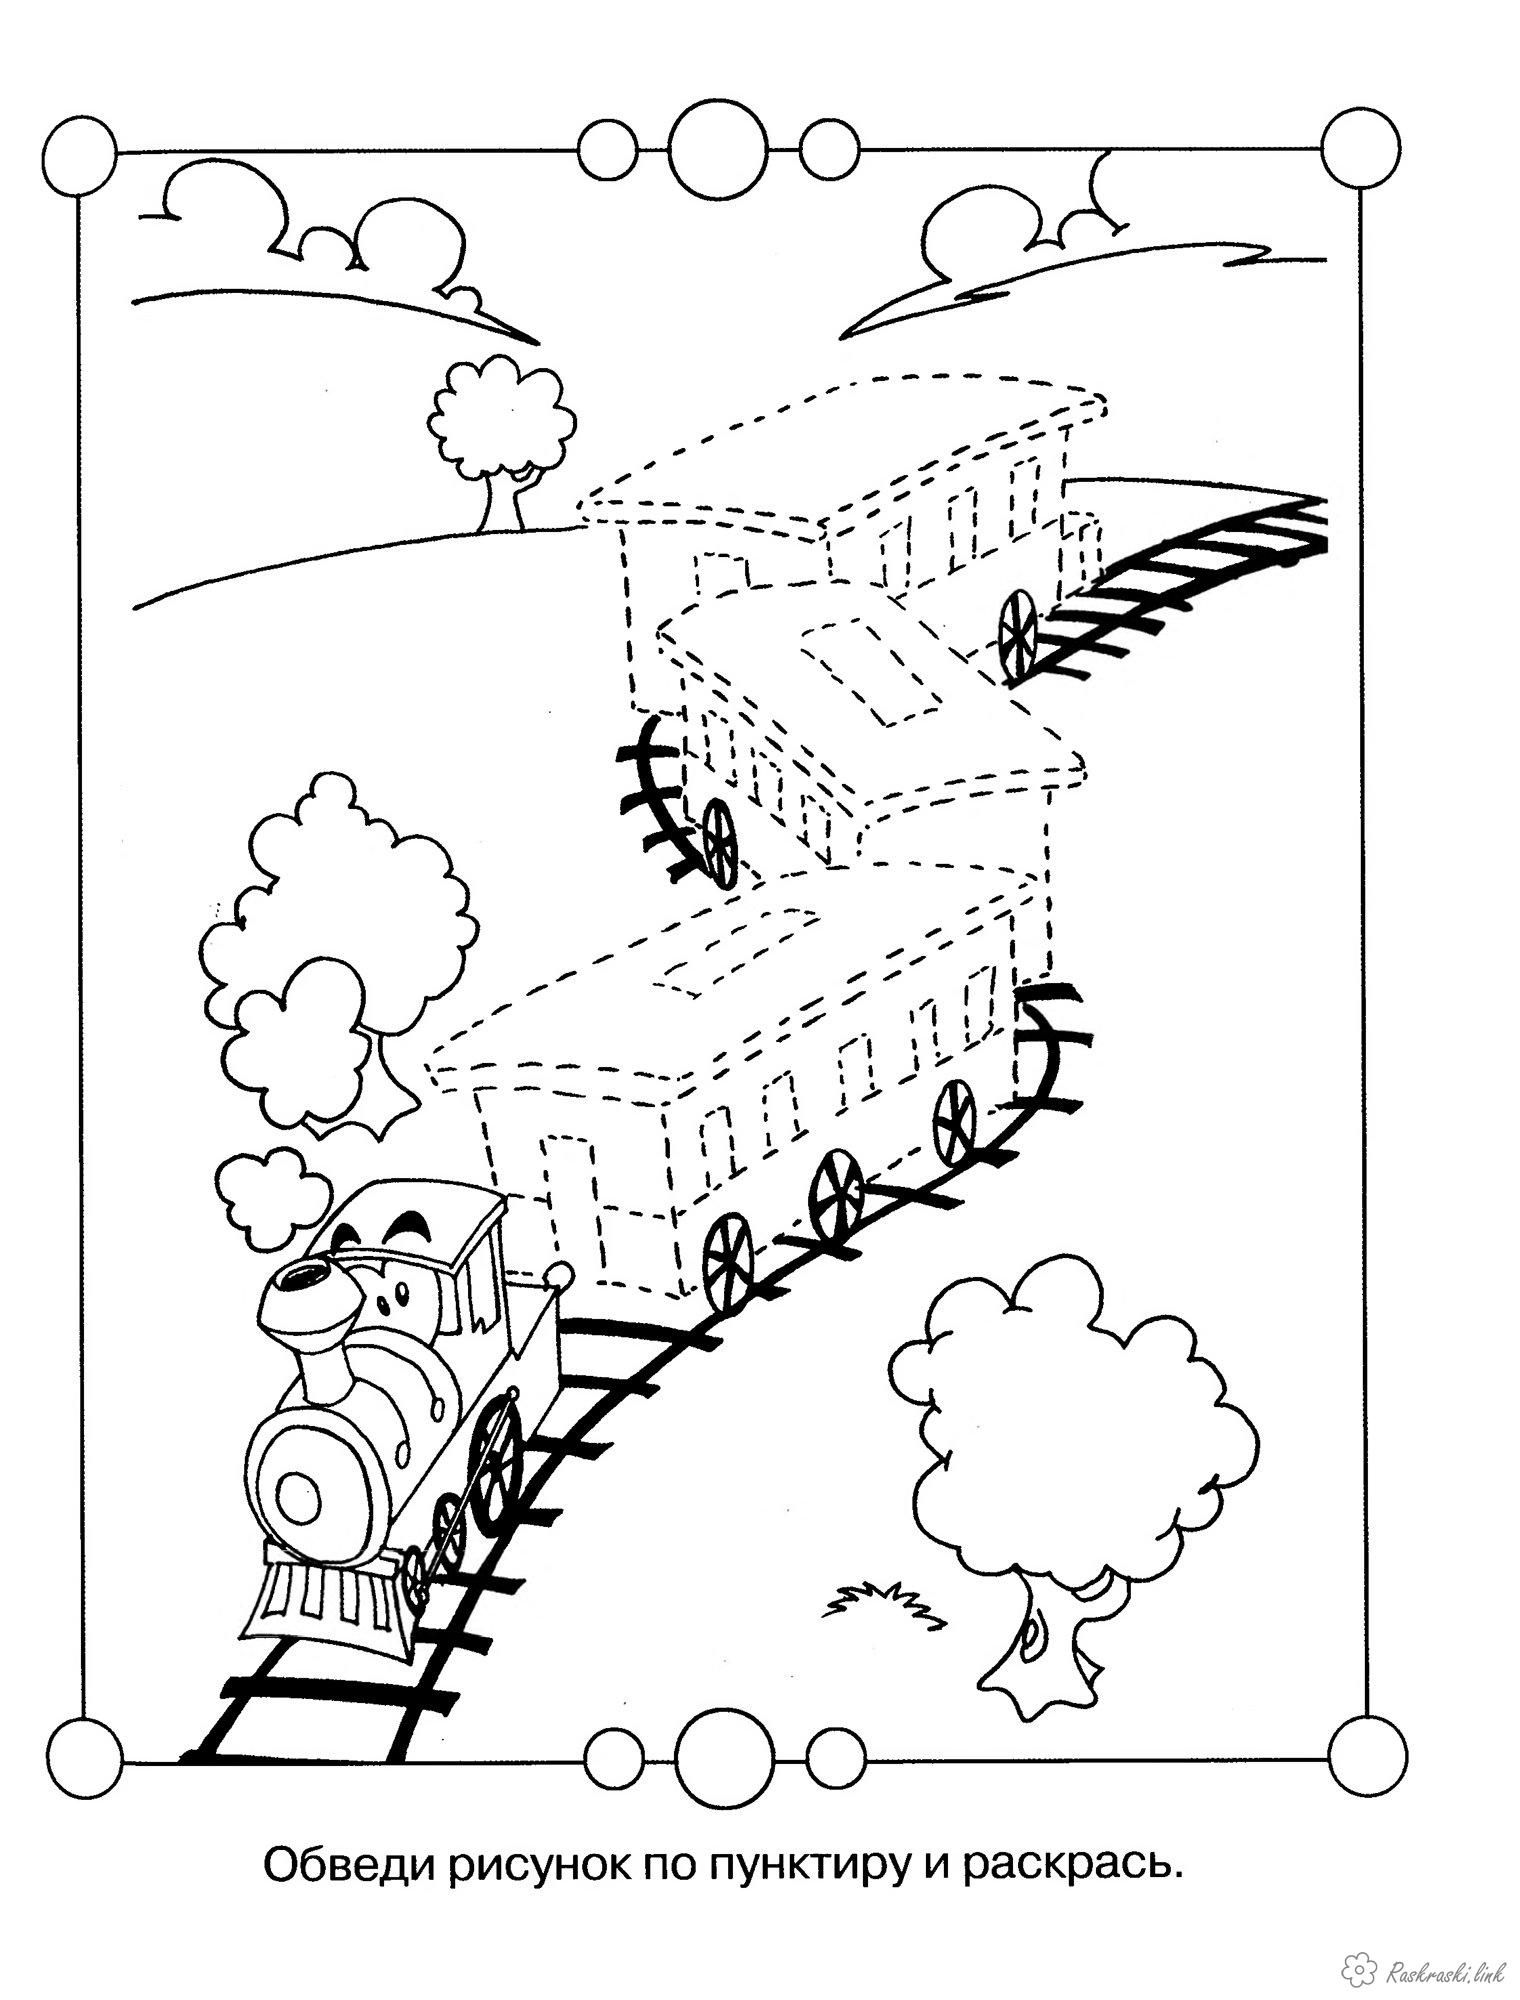 Coloring Joined At Points Kids Coloring Train Connect And Discover Raskraski Detskie Raskraski Rebusy